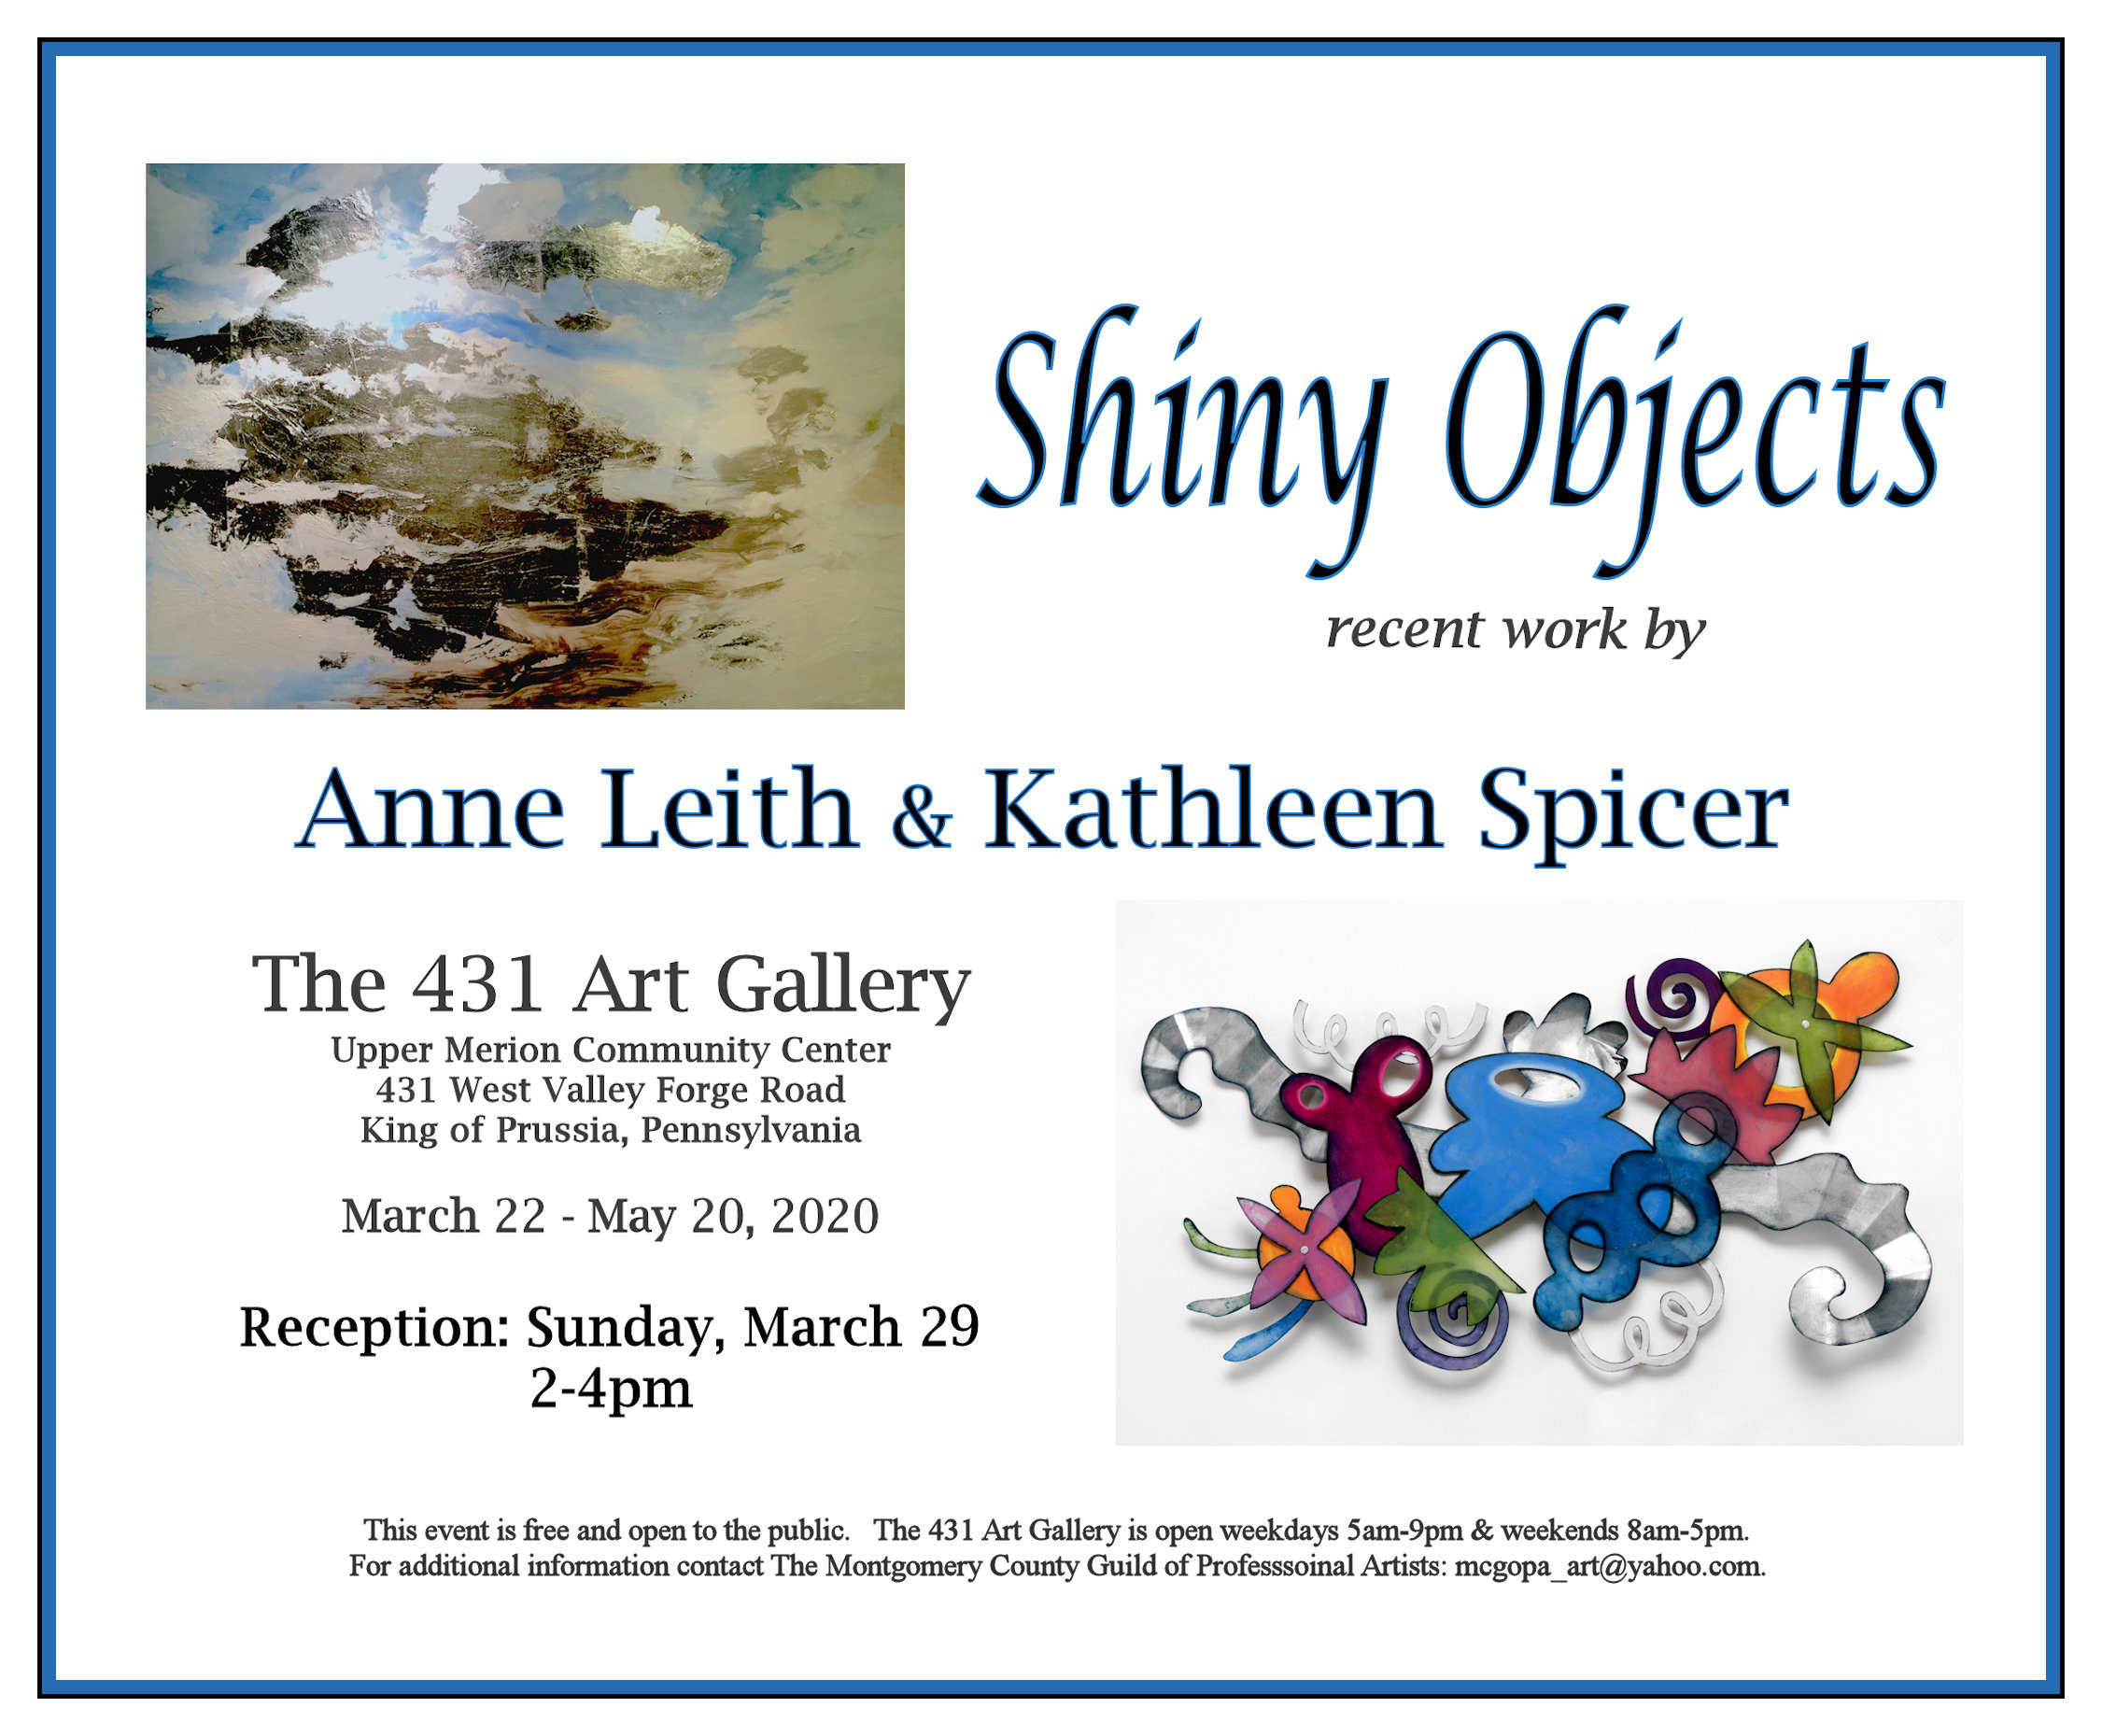 Shiny_Objects_2020_Leith_Spicer_Flyer